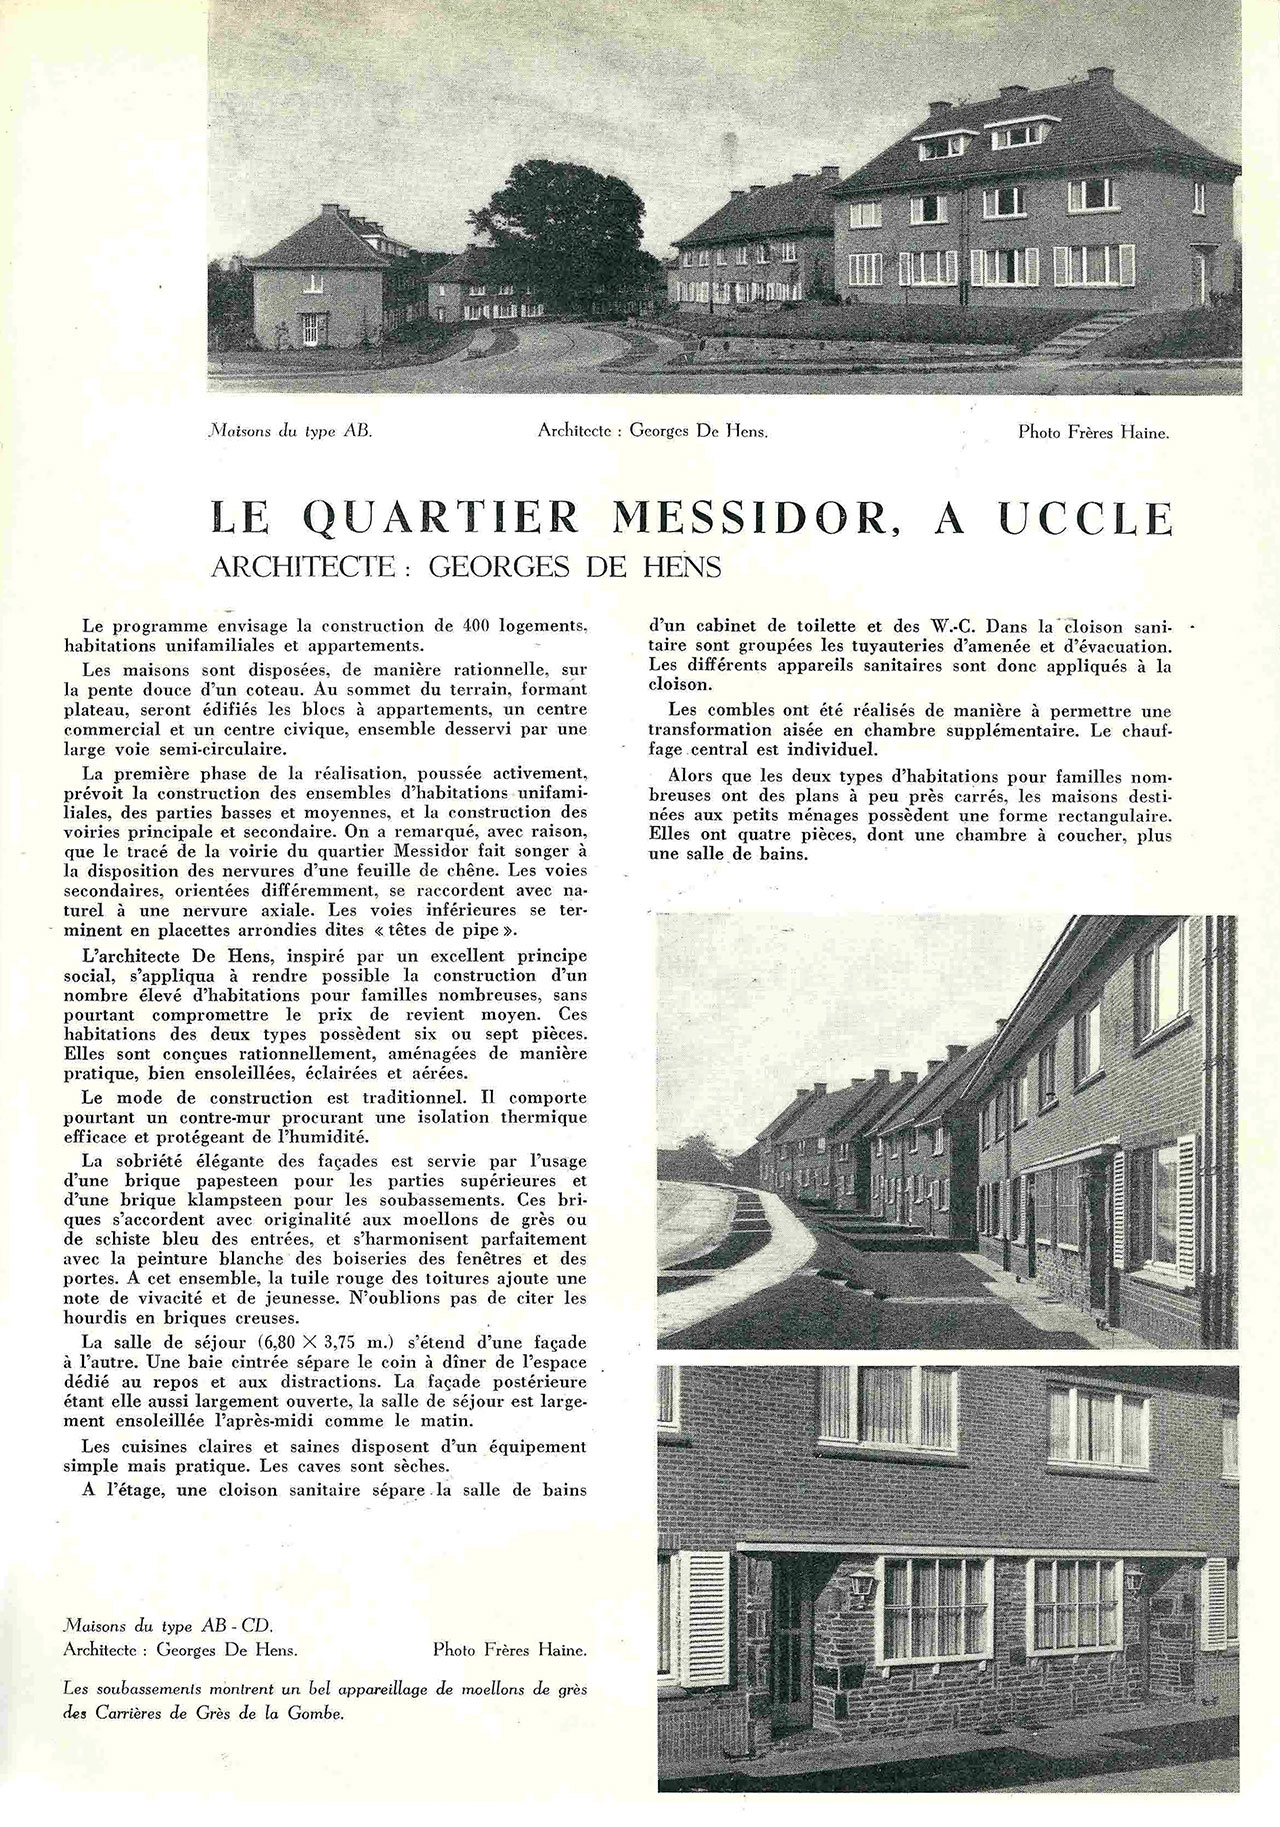 Le quartier Messidor, à Uccle